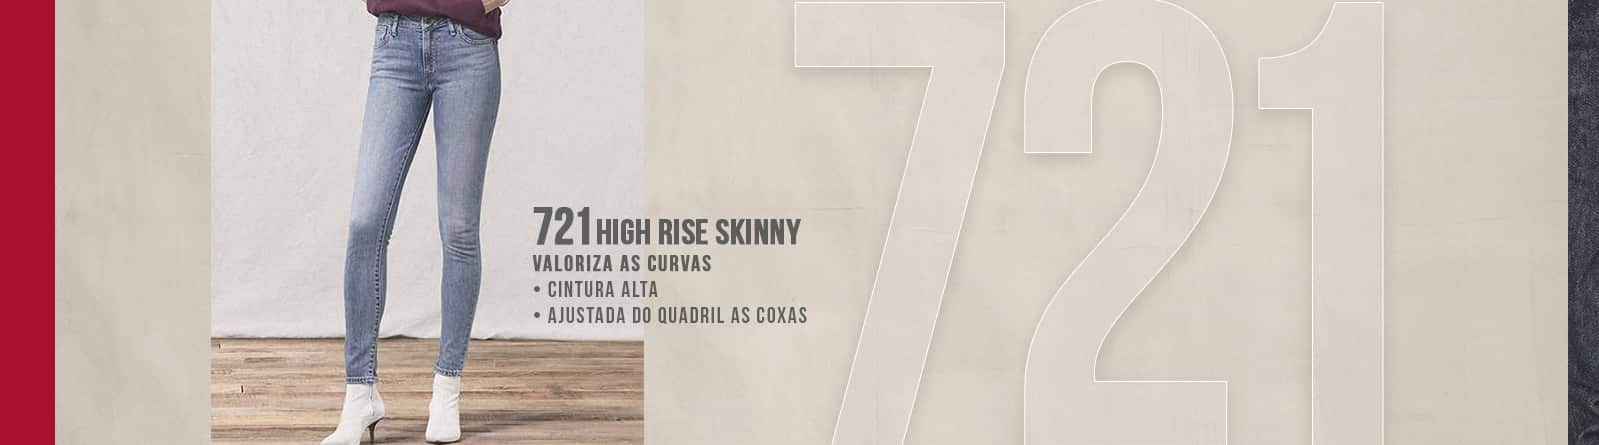 721 High Rise Skinny Levis